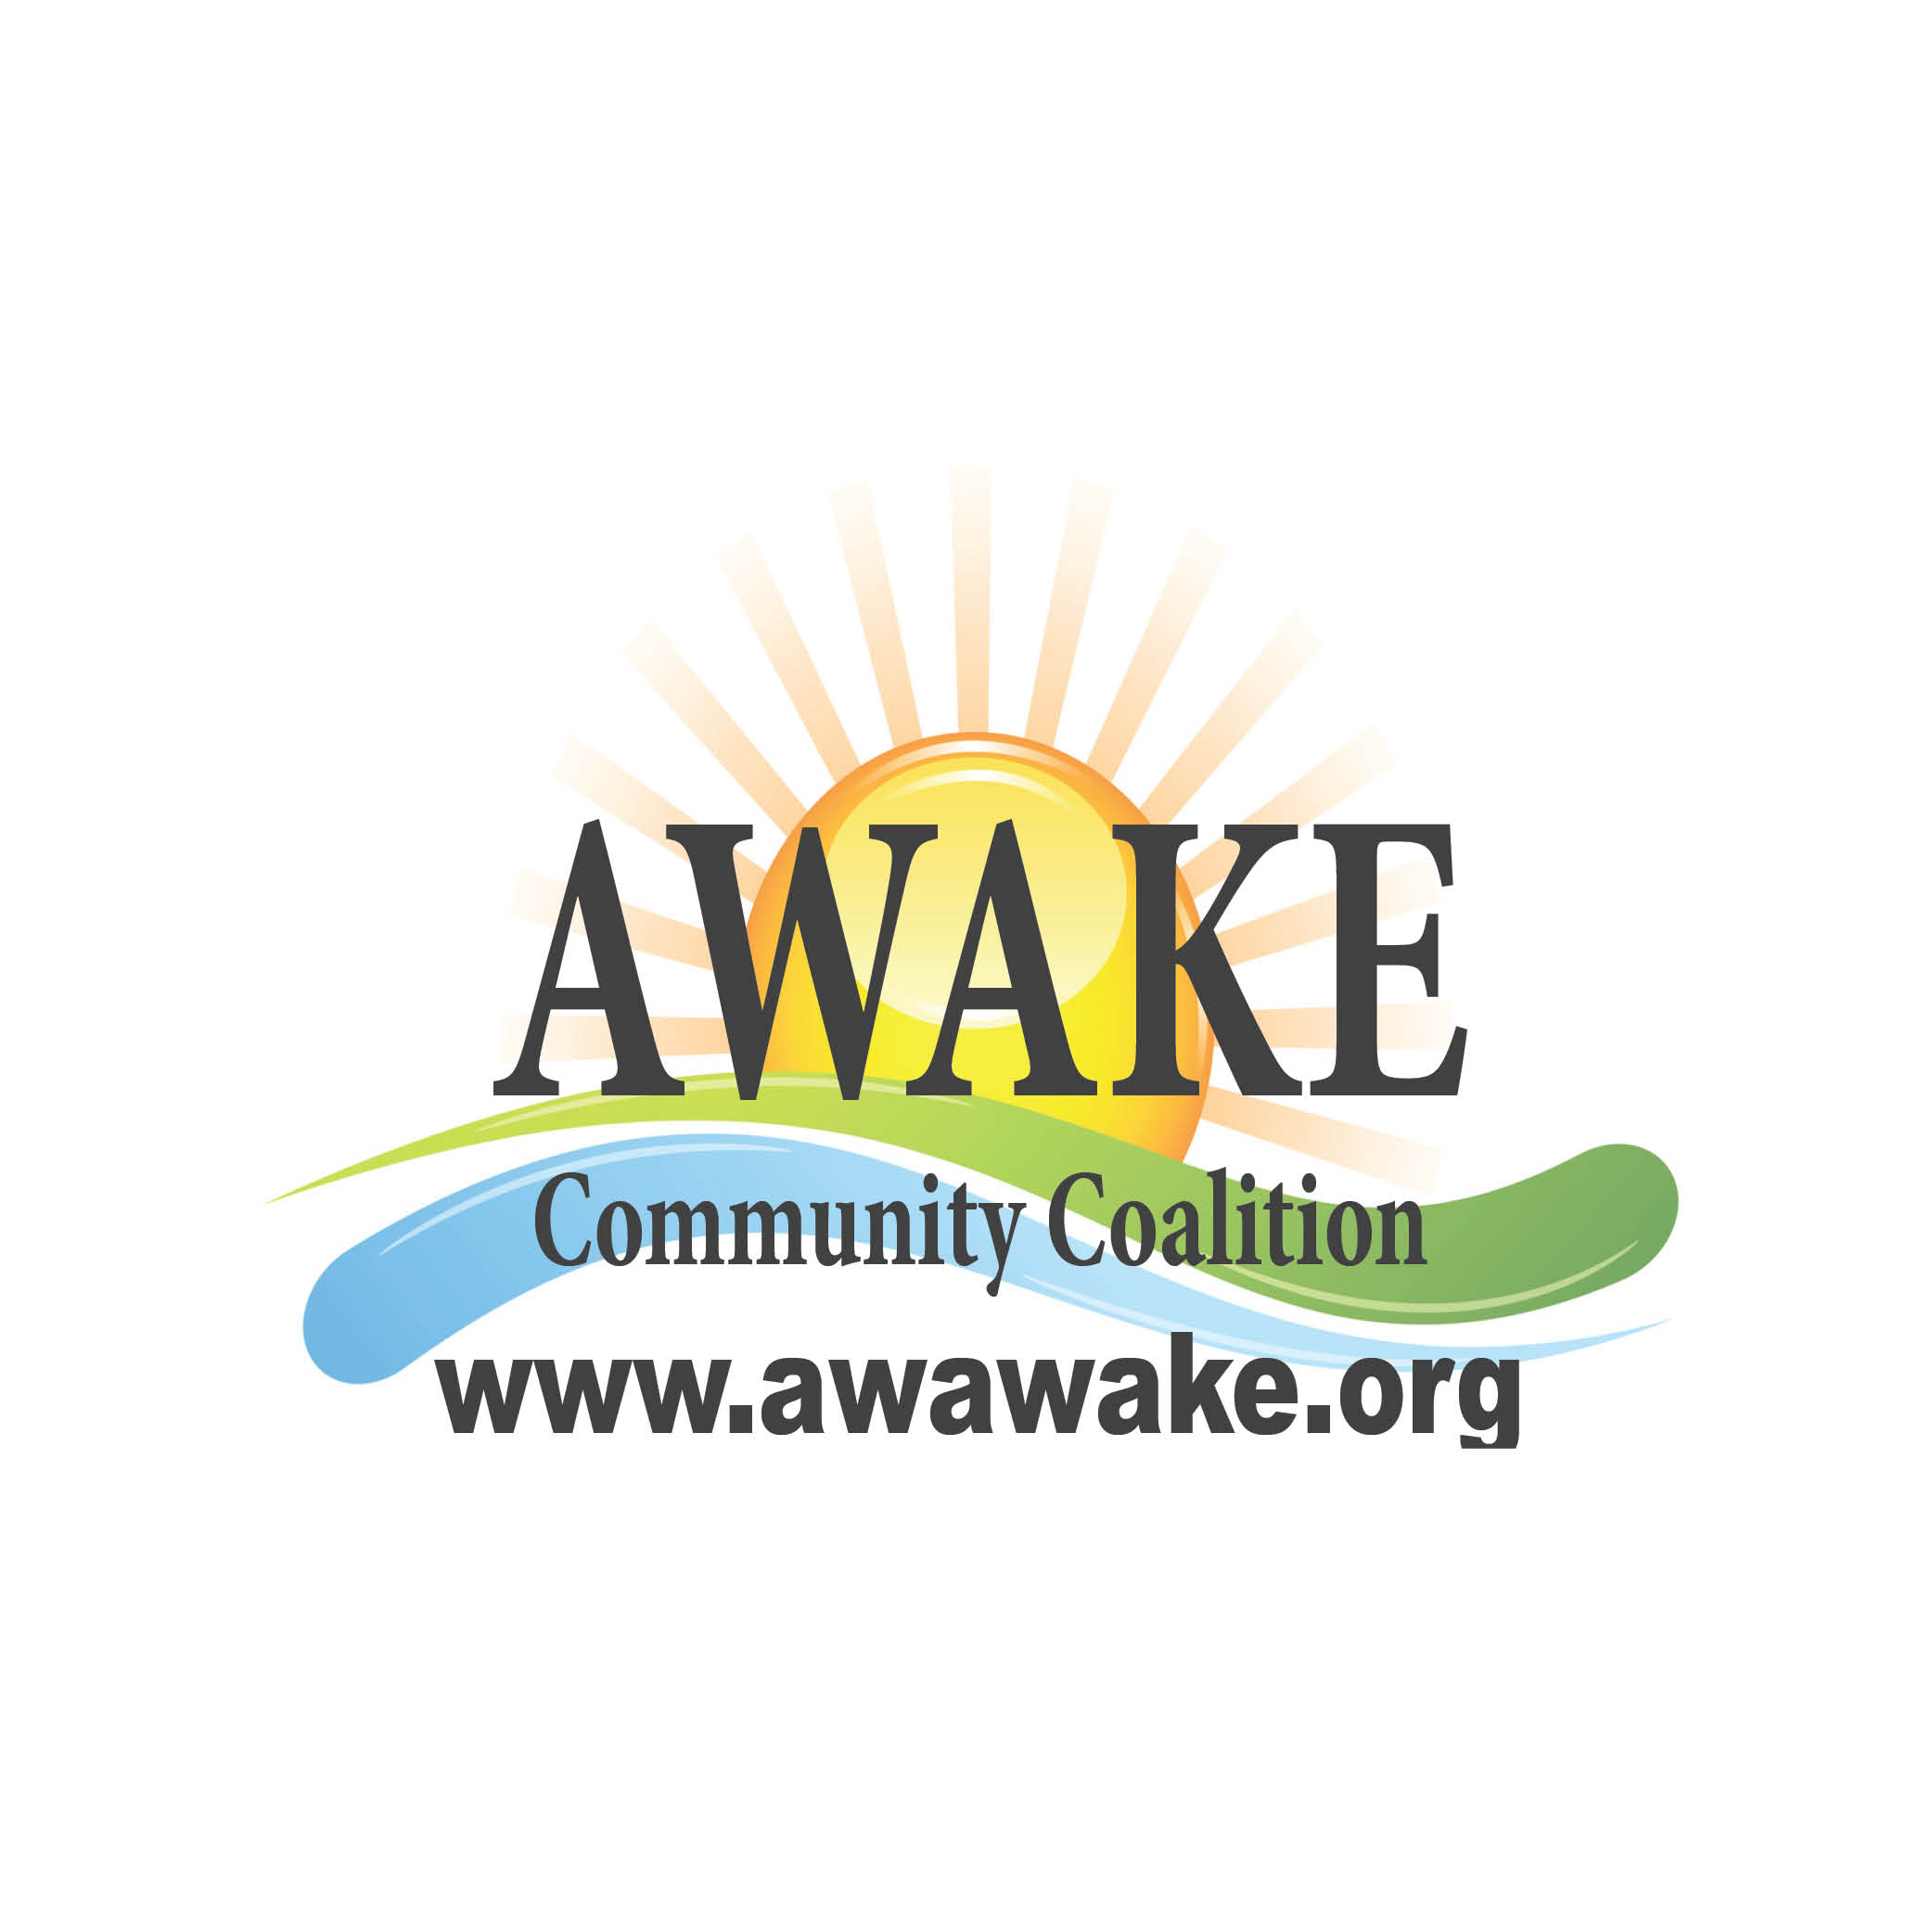 Our Mission - Awake Community Coalition is a coalition of dedicated and concerned community members working together to address the risk factors associated with youth substance abuse and to promote healthy life styles through the use of evidence based prevention programs to educate our youth about the dangers of substance abuse in hopes it will empower them to make informed choices in their own lives.